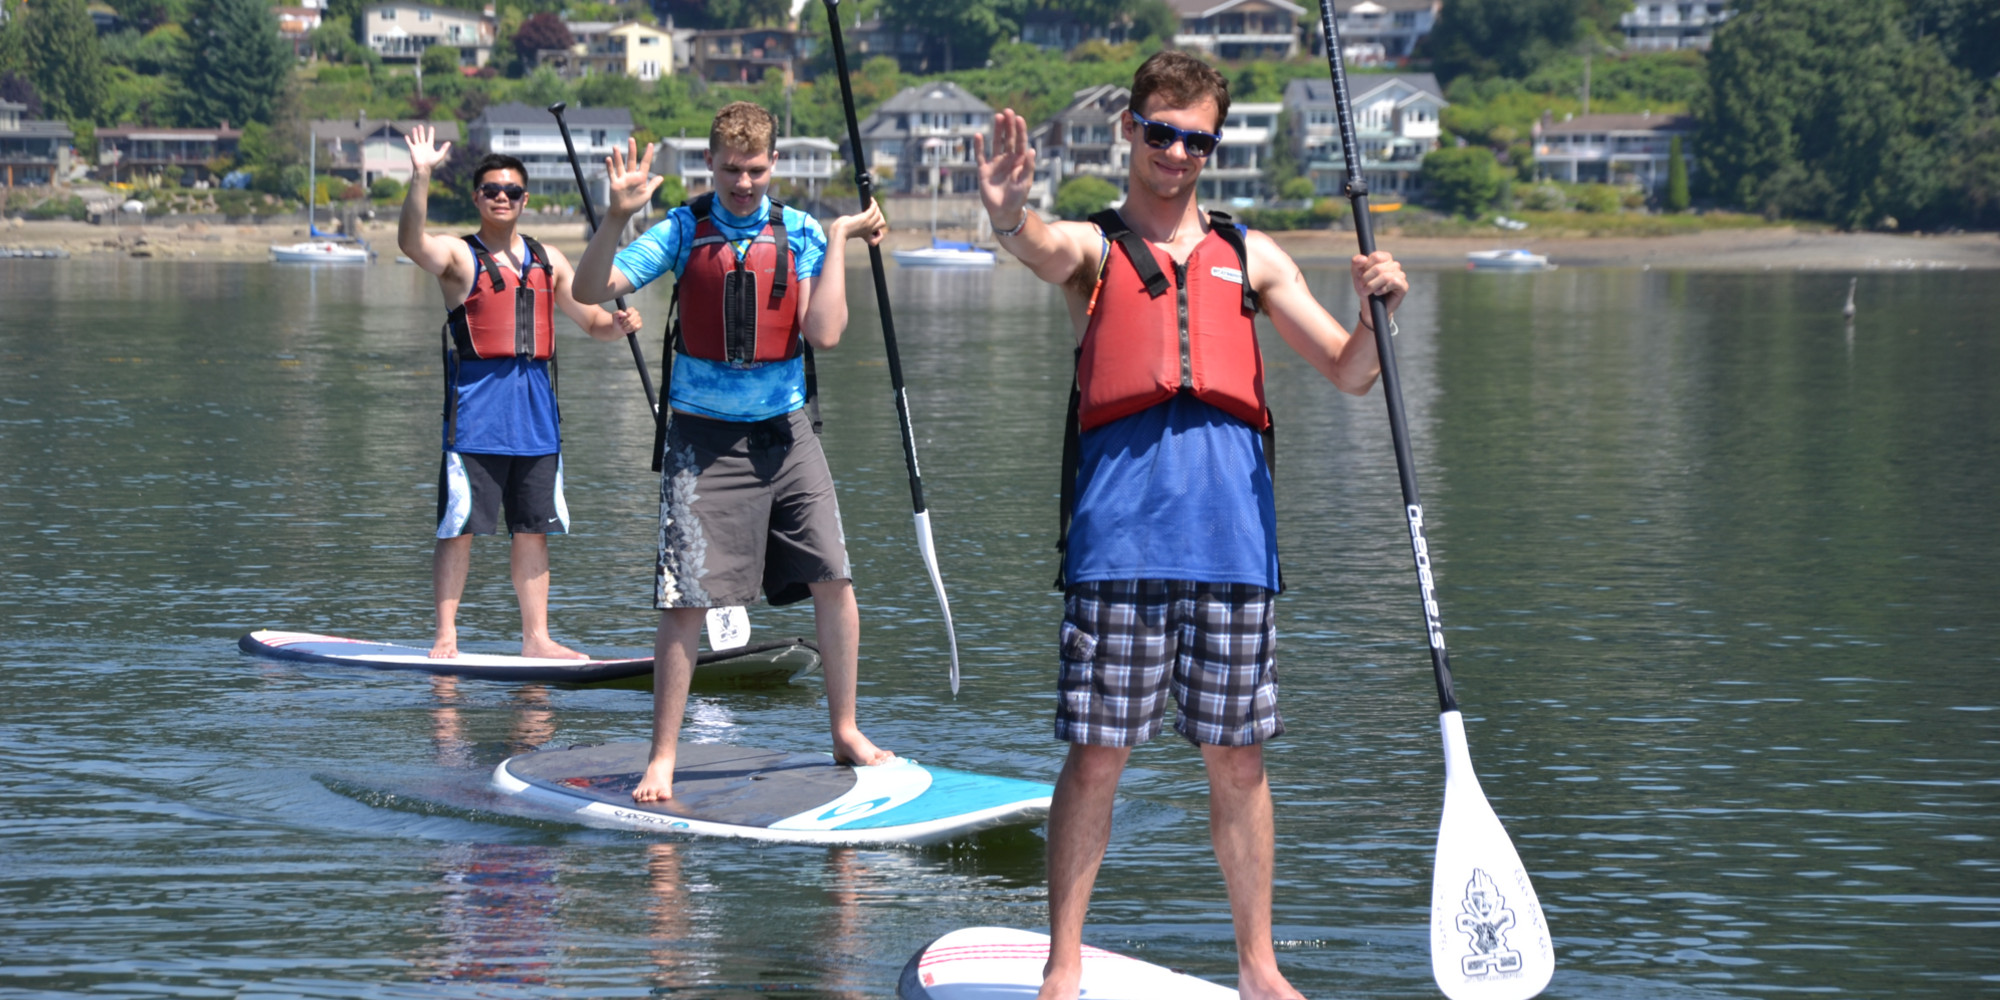 Three young men wave to the camera while standing on paddle boards.